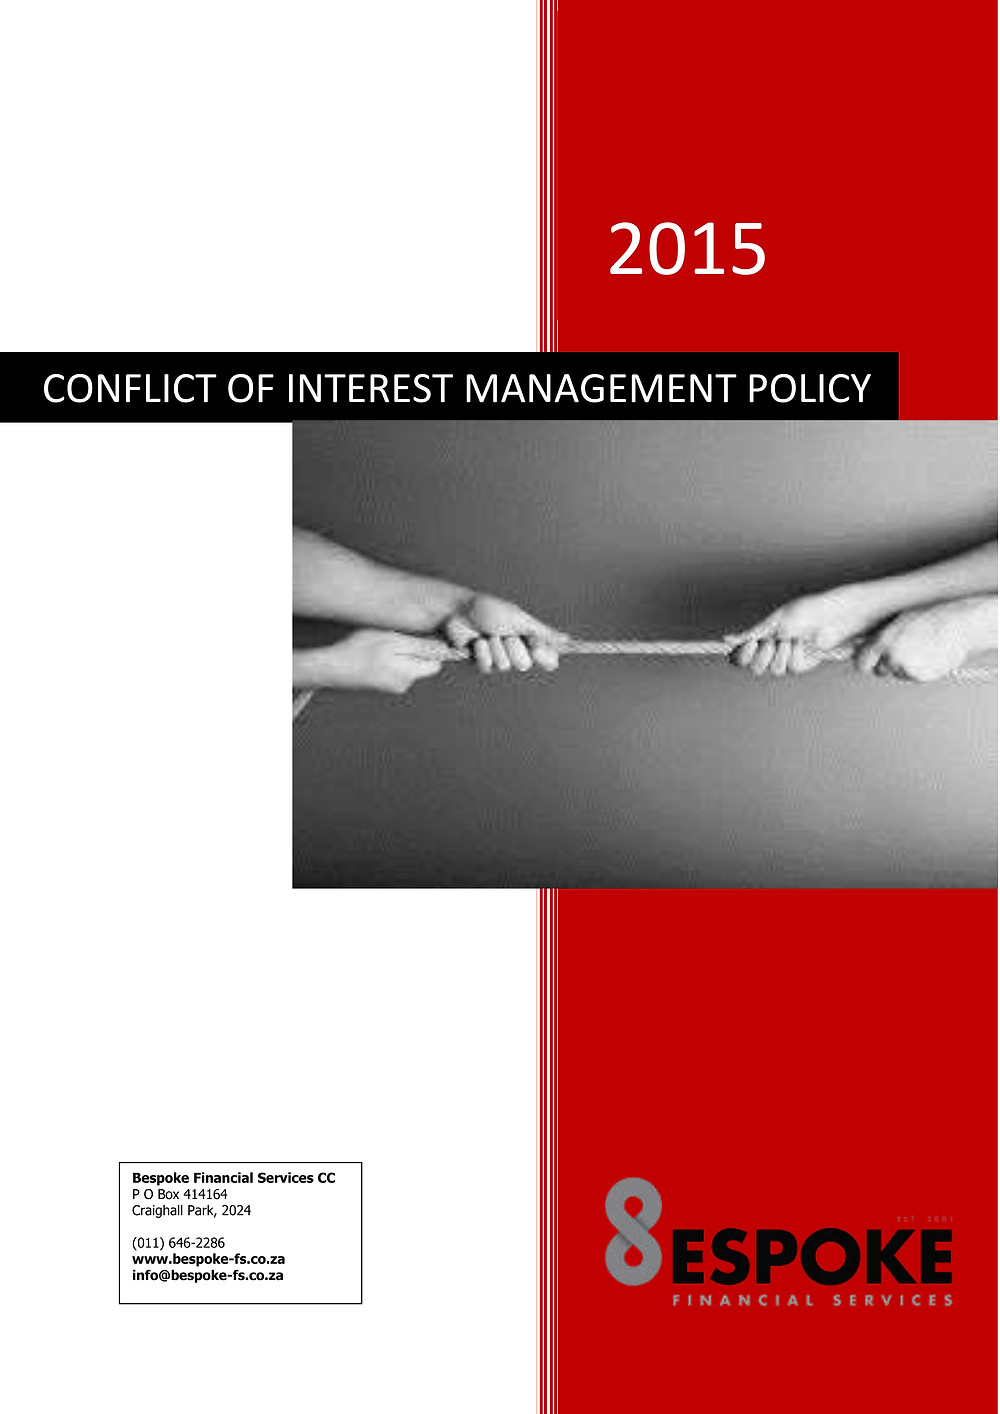 CONFLICT OF INTEREST MANAGEMENT POLICY 2015 cover_1.jpg